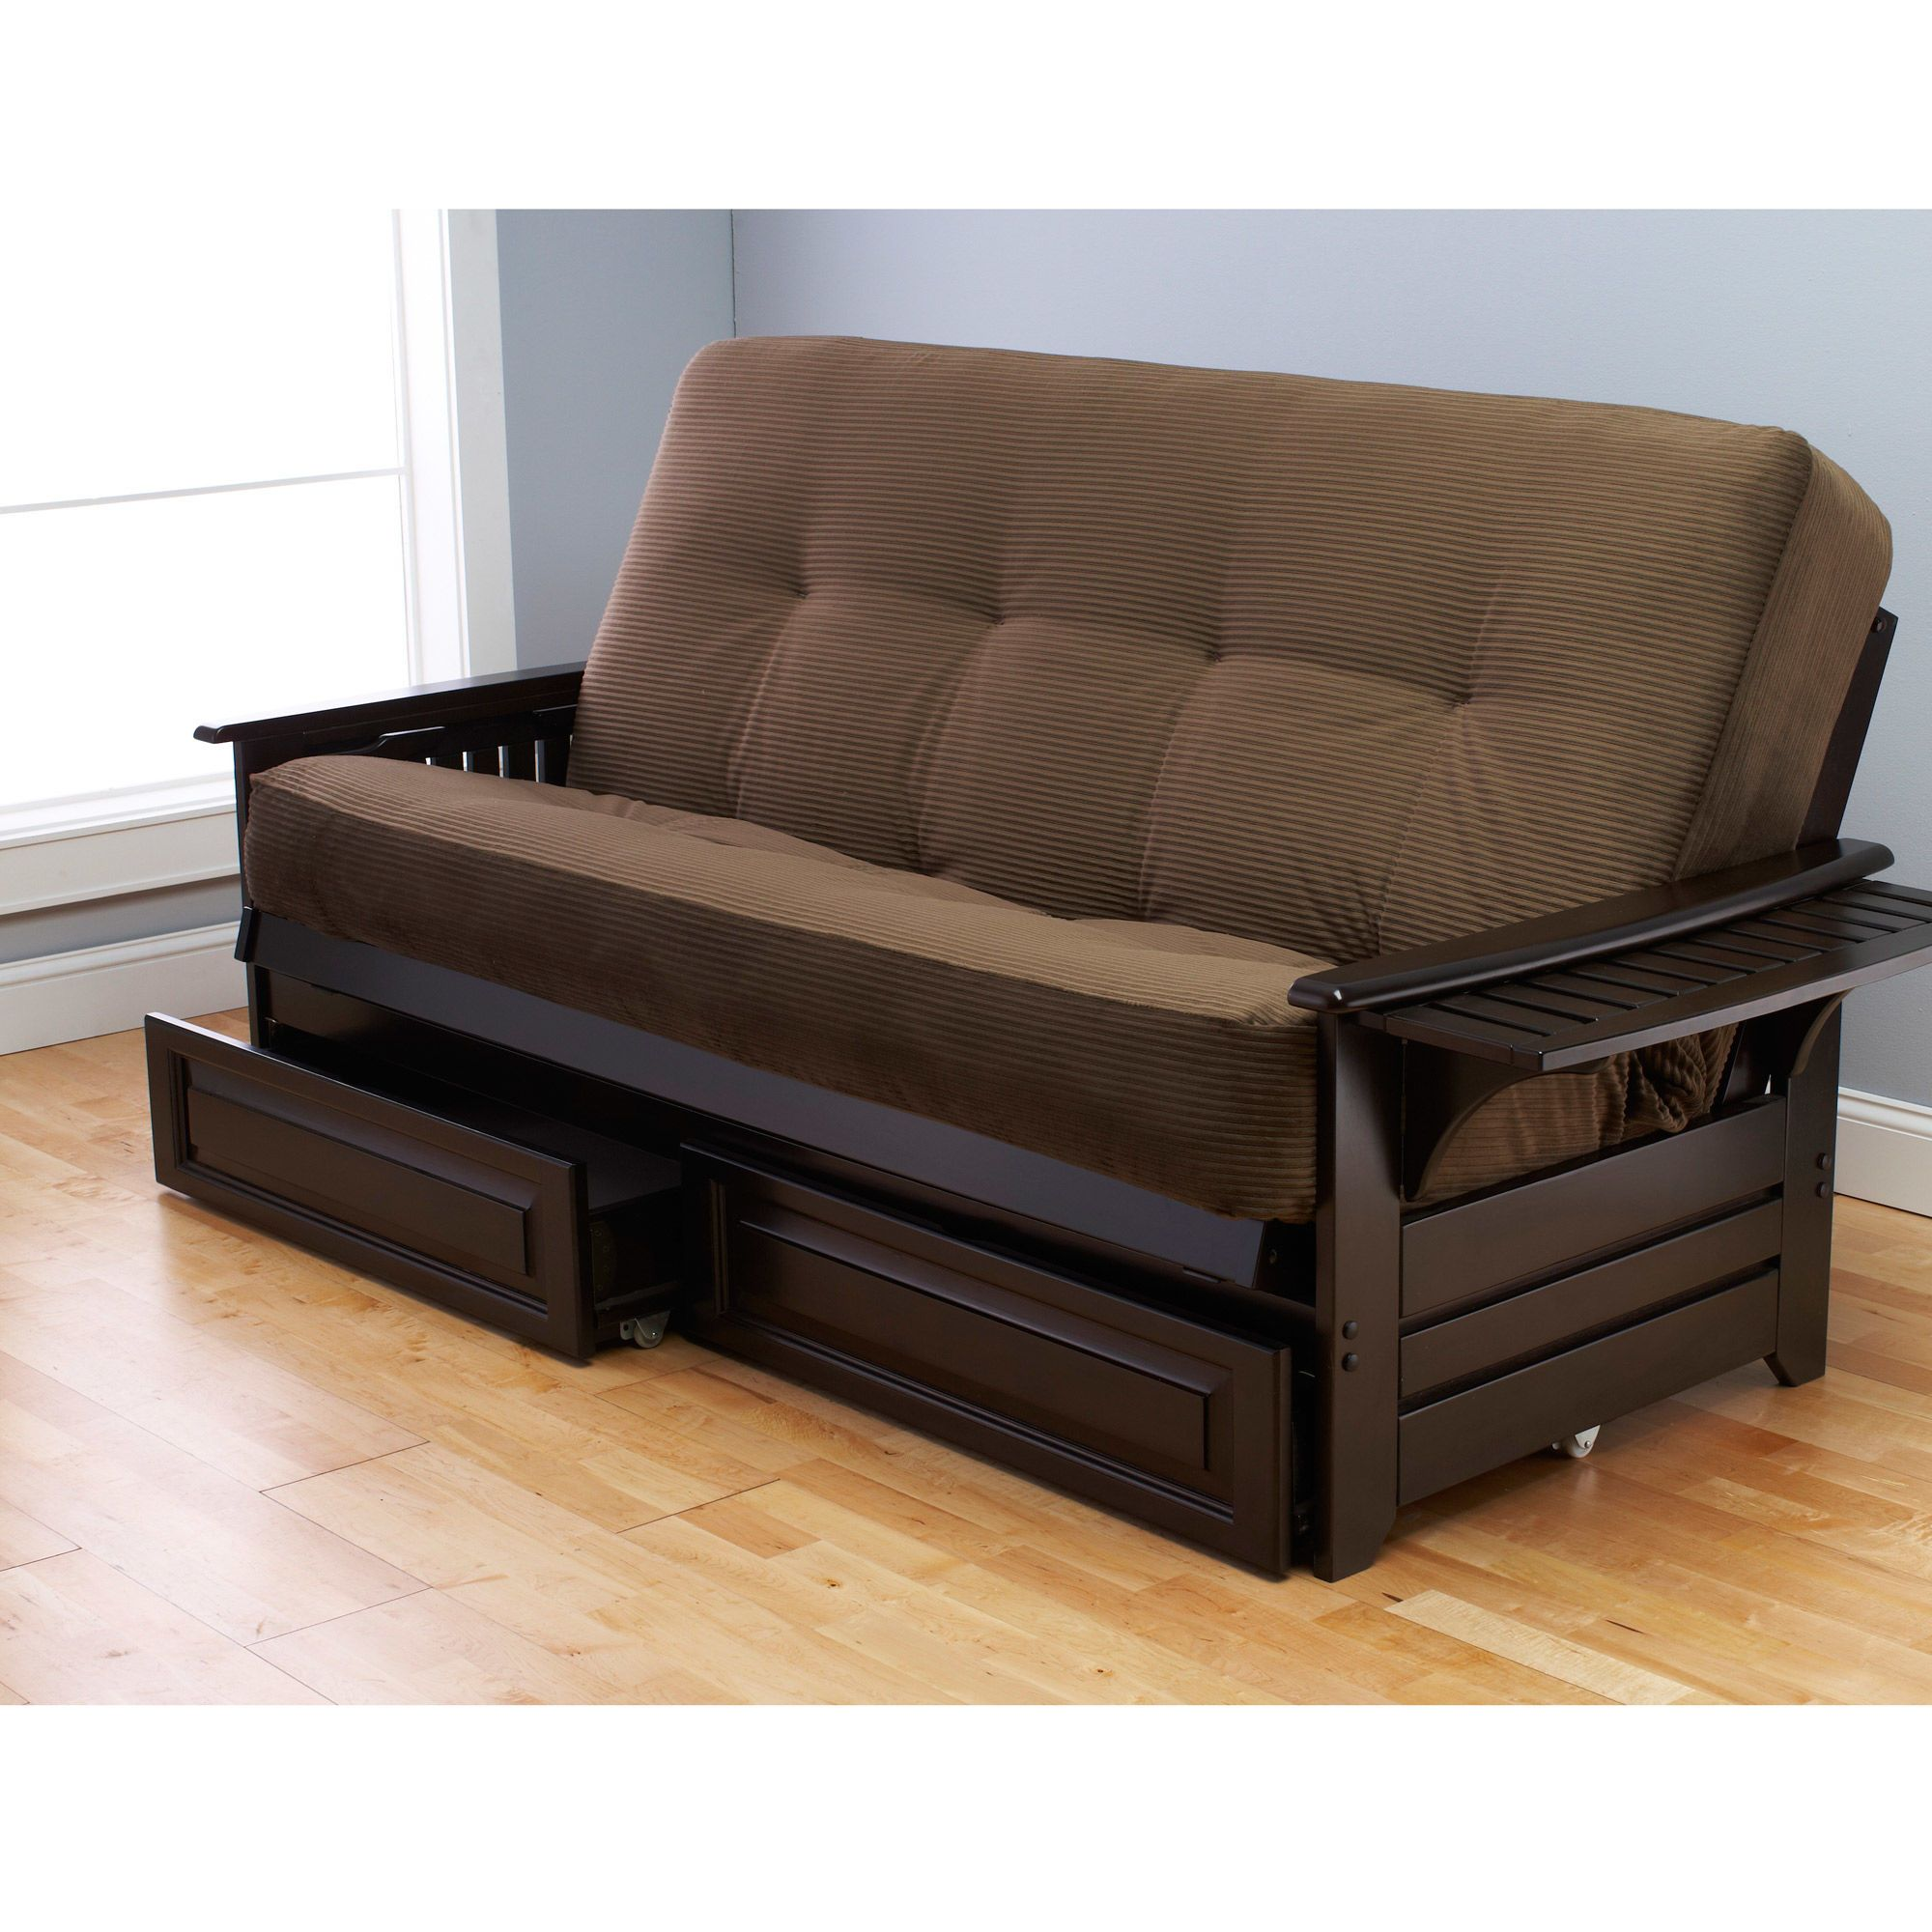 Wooden frame double sofa bed extension contemporary wood for Wooden divan bed with drawers